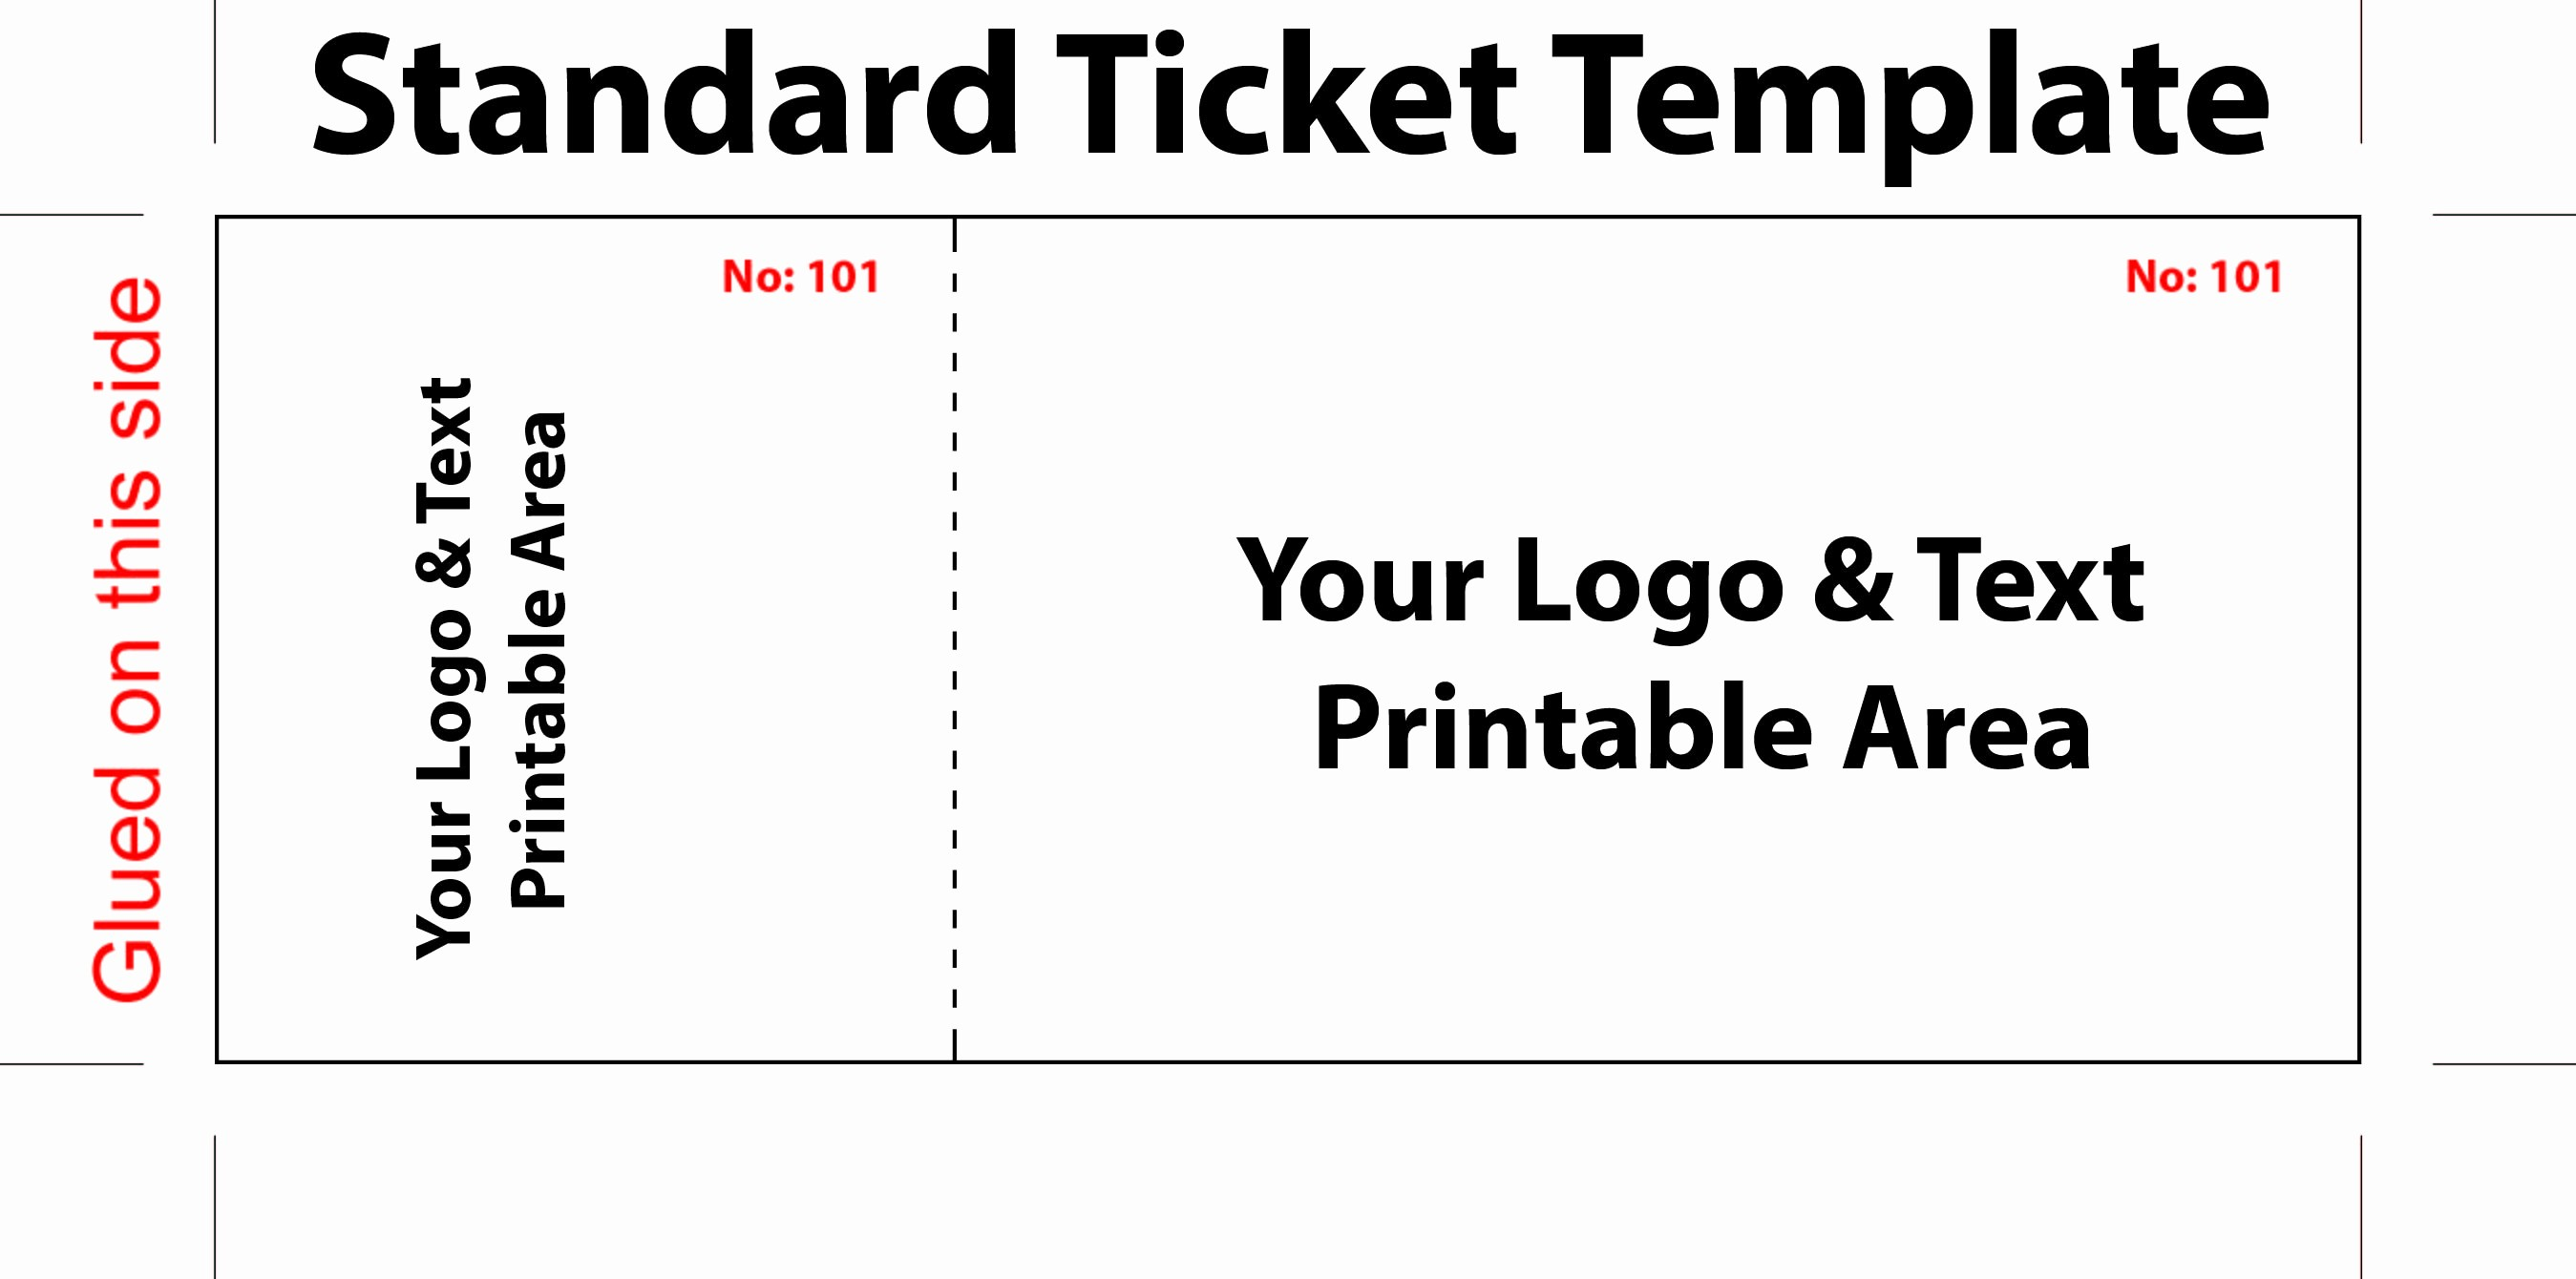 Admit One Ticket Template Printable Best Of Free Editable Standard Ticket Template Example for Concert